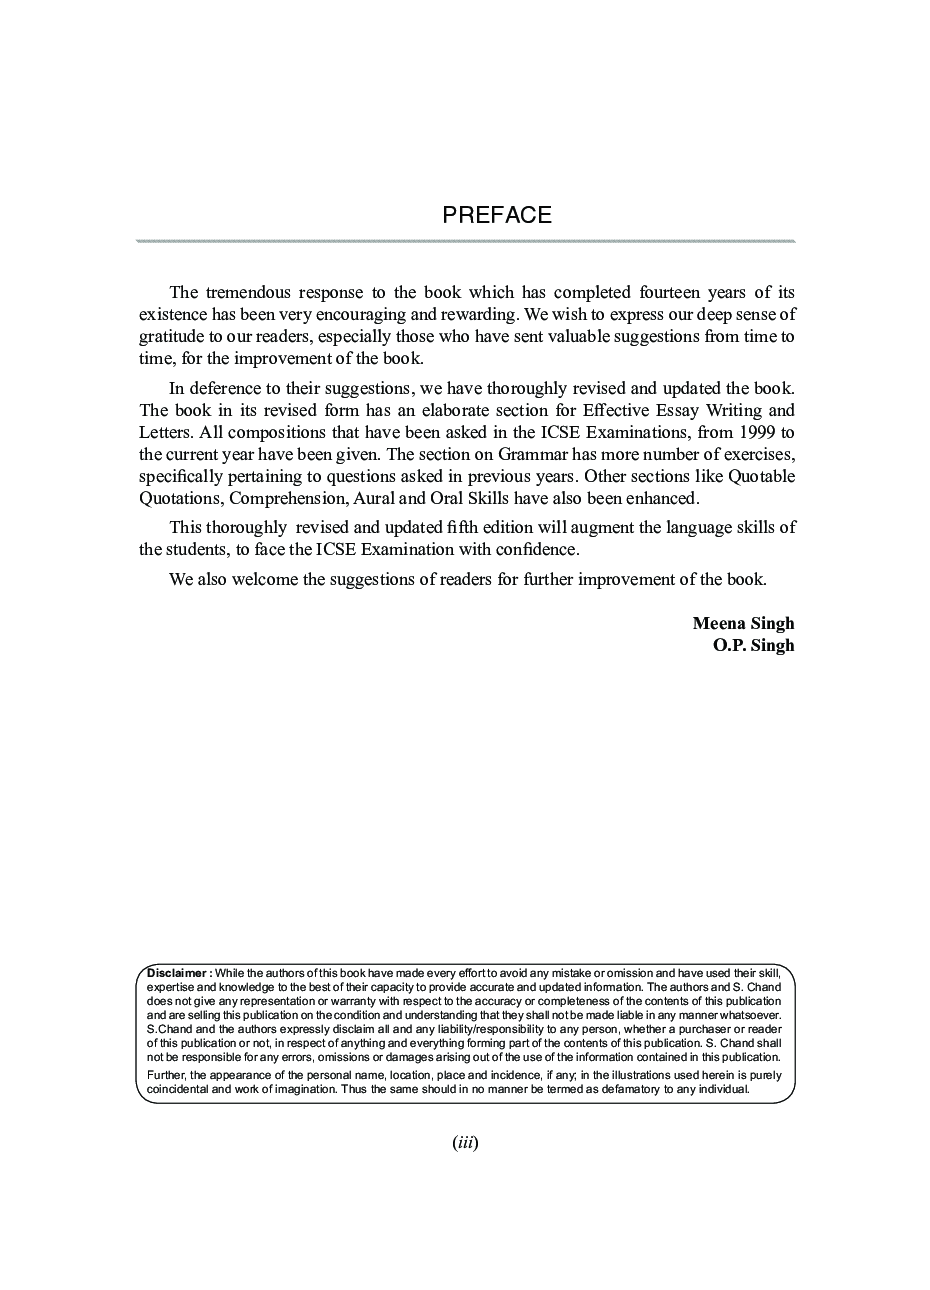 ICSE Art of Effective English Writing for Classes IX-X (2021 Edition) - Page 4